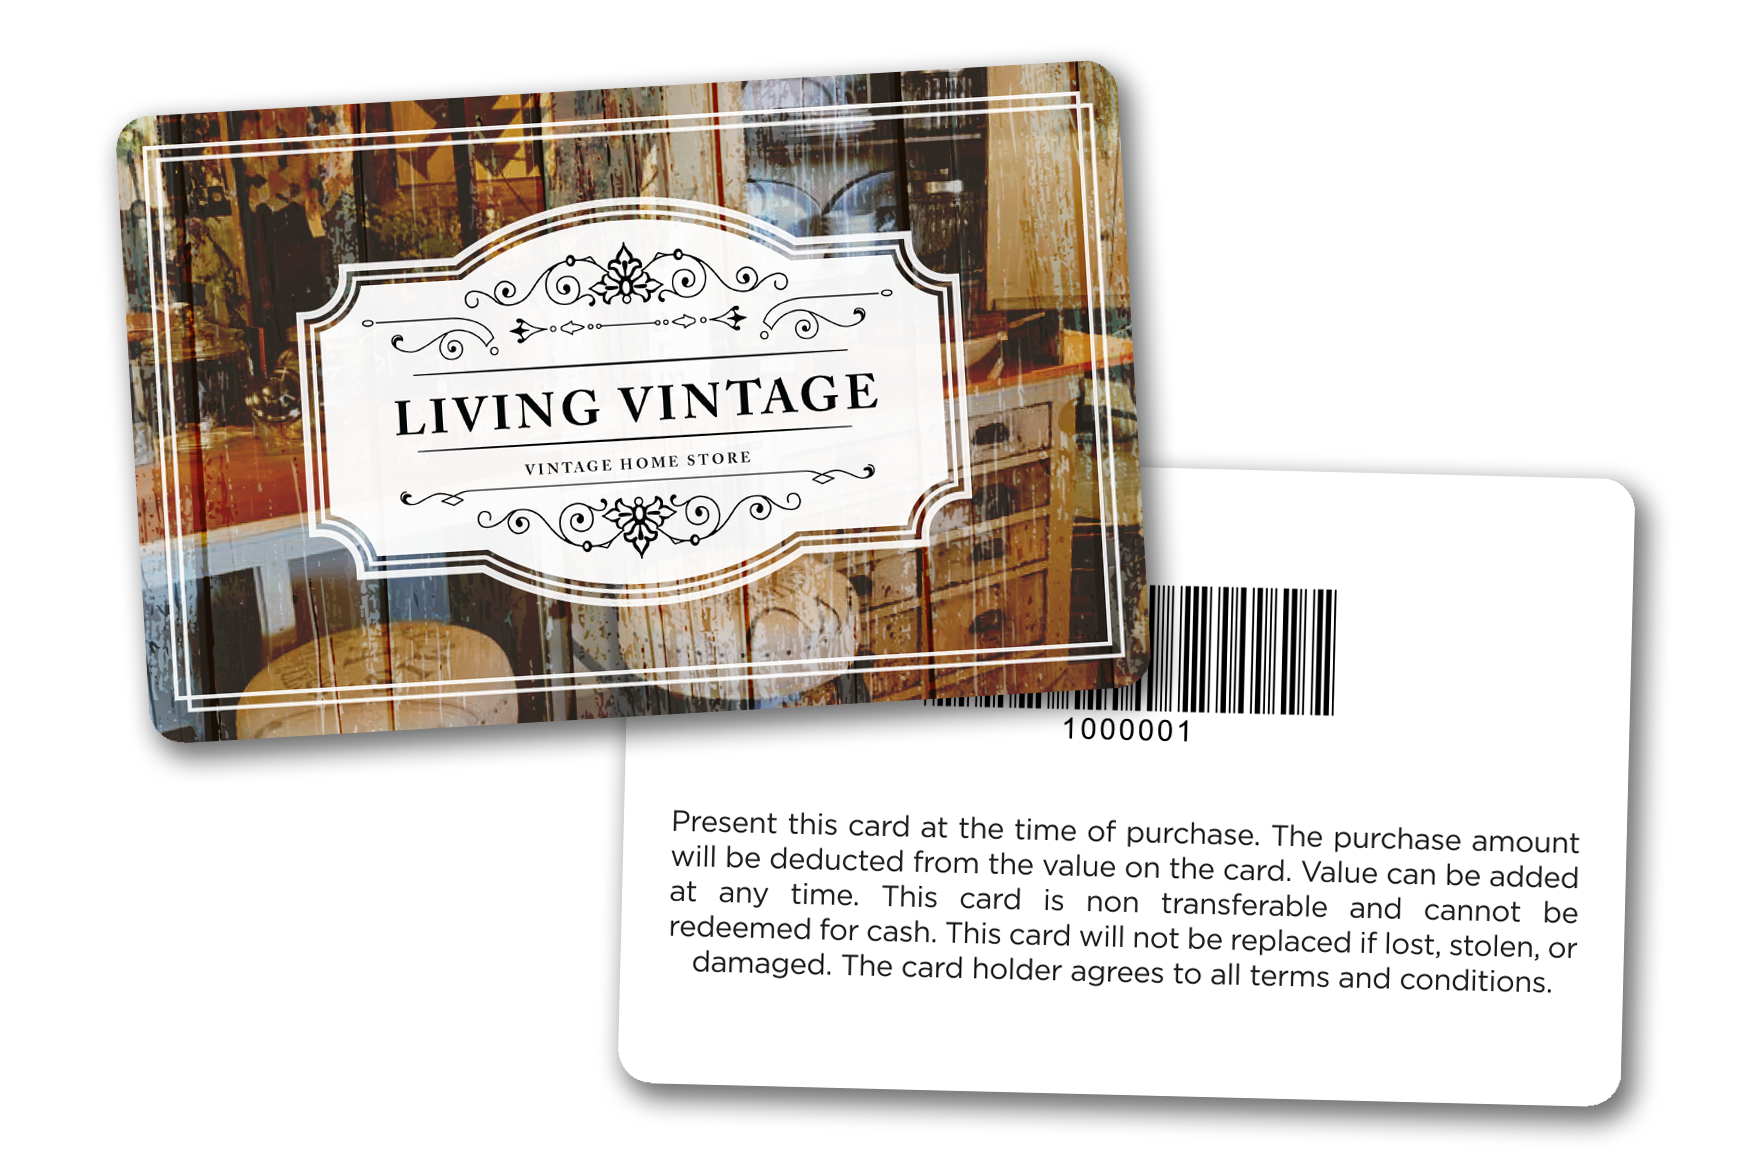 Custom Gift Cards for Living Vintage - A Vintage Home Store